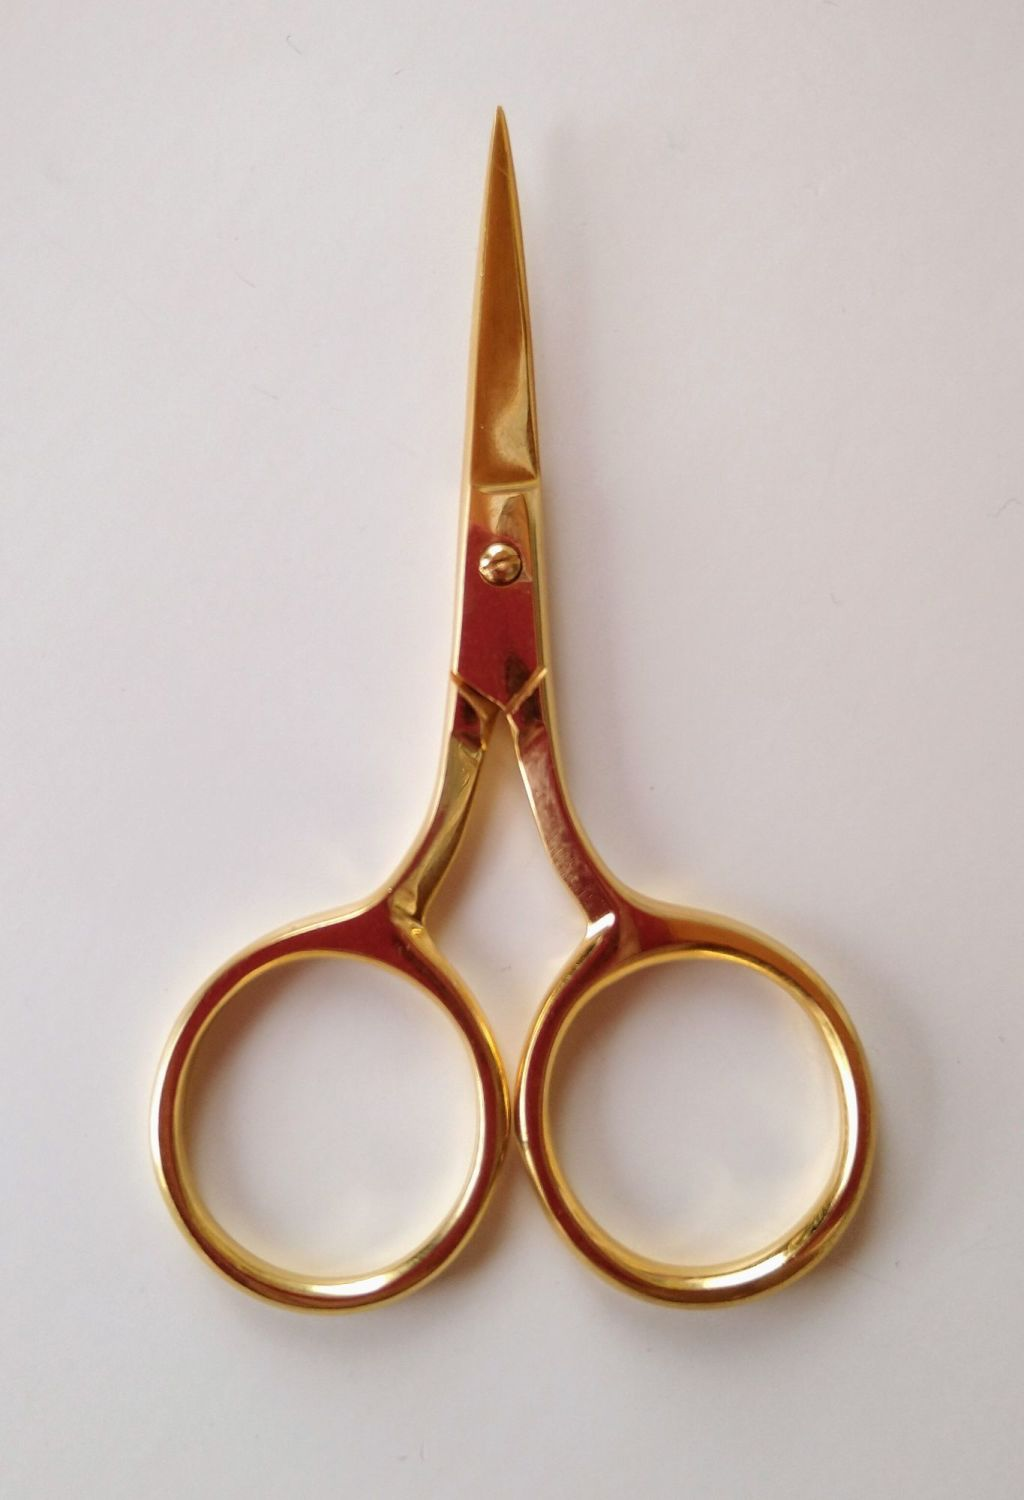 Embroidery scissors for goldwork - Gold colour